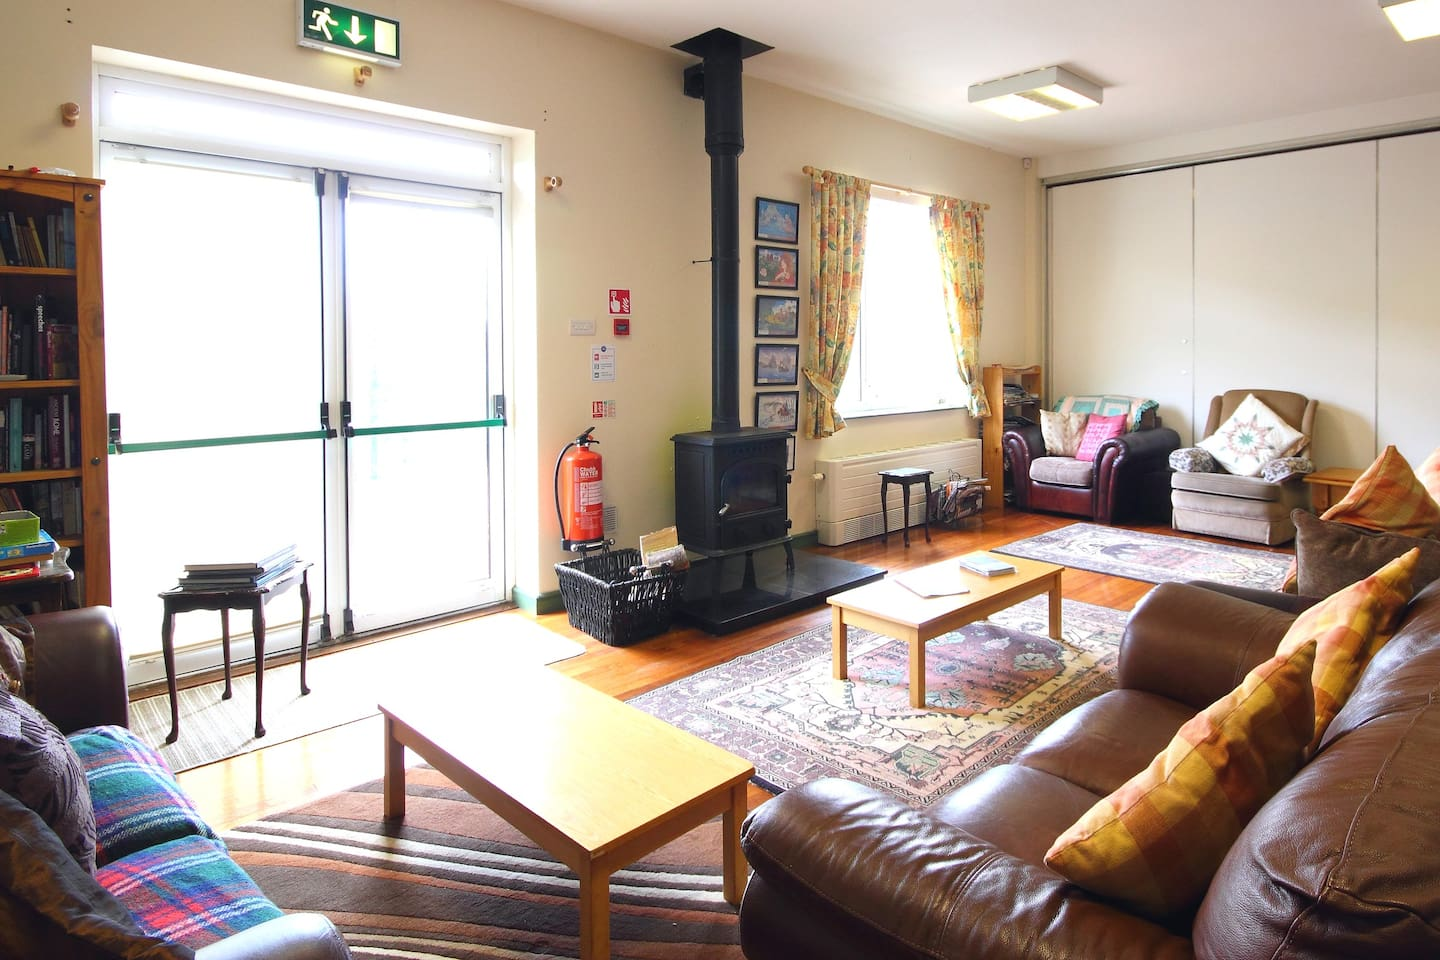 Our spacious and comfortable lounge with TV, wood burning stove and self-catering kitchen